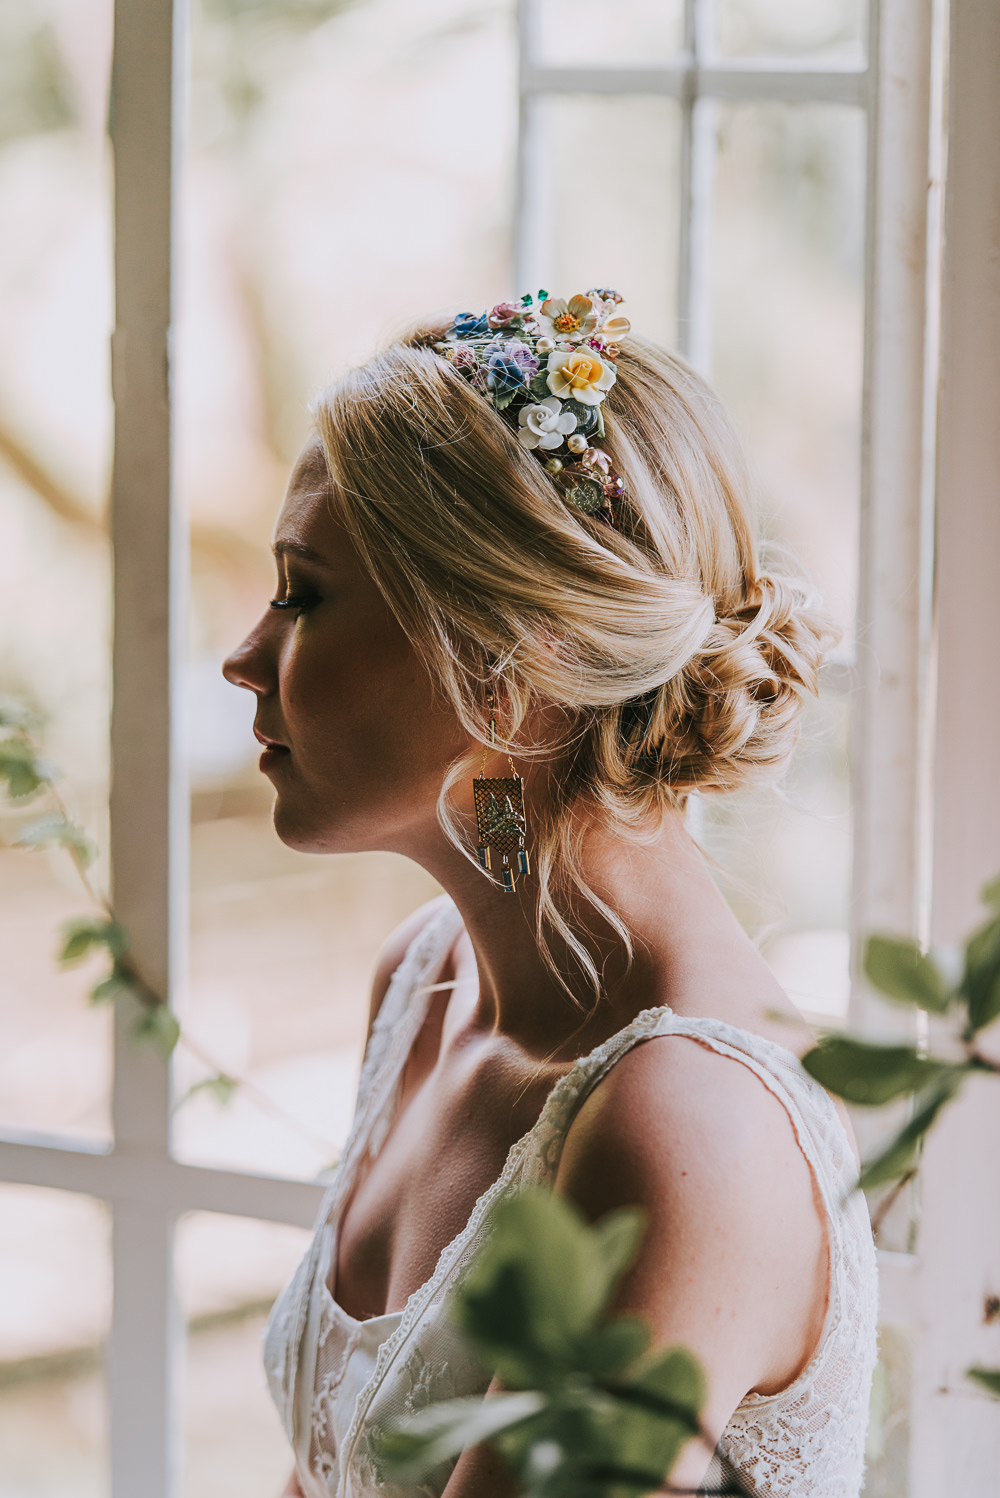 Bride Bridal Up Do Plait Hairstyle Floral Hairpiece River Romance Wedding Ideas Mindy Coe Photography